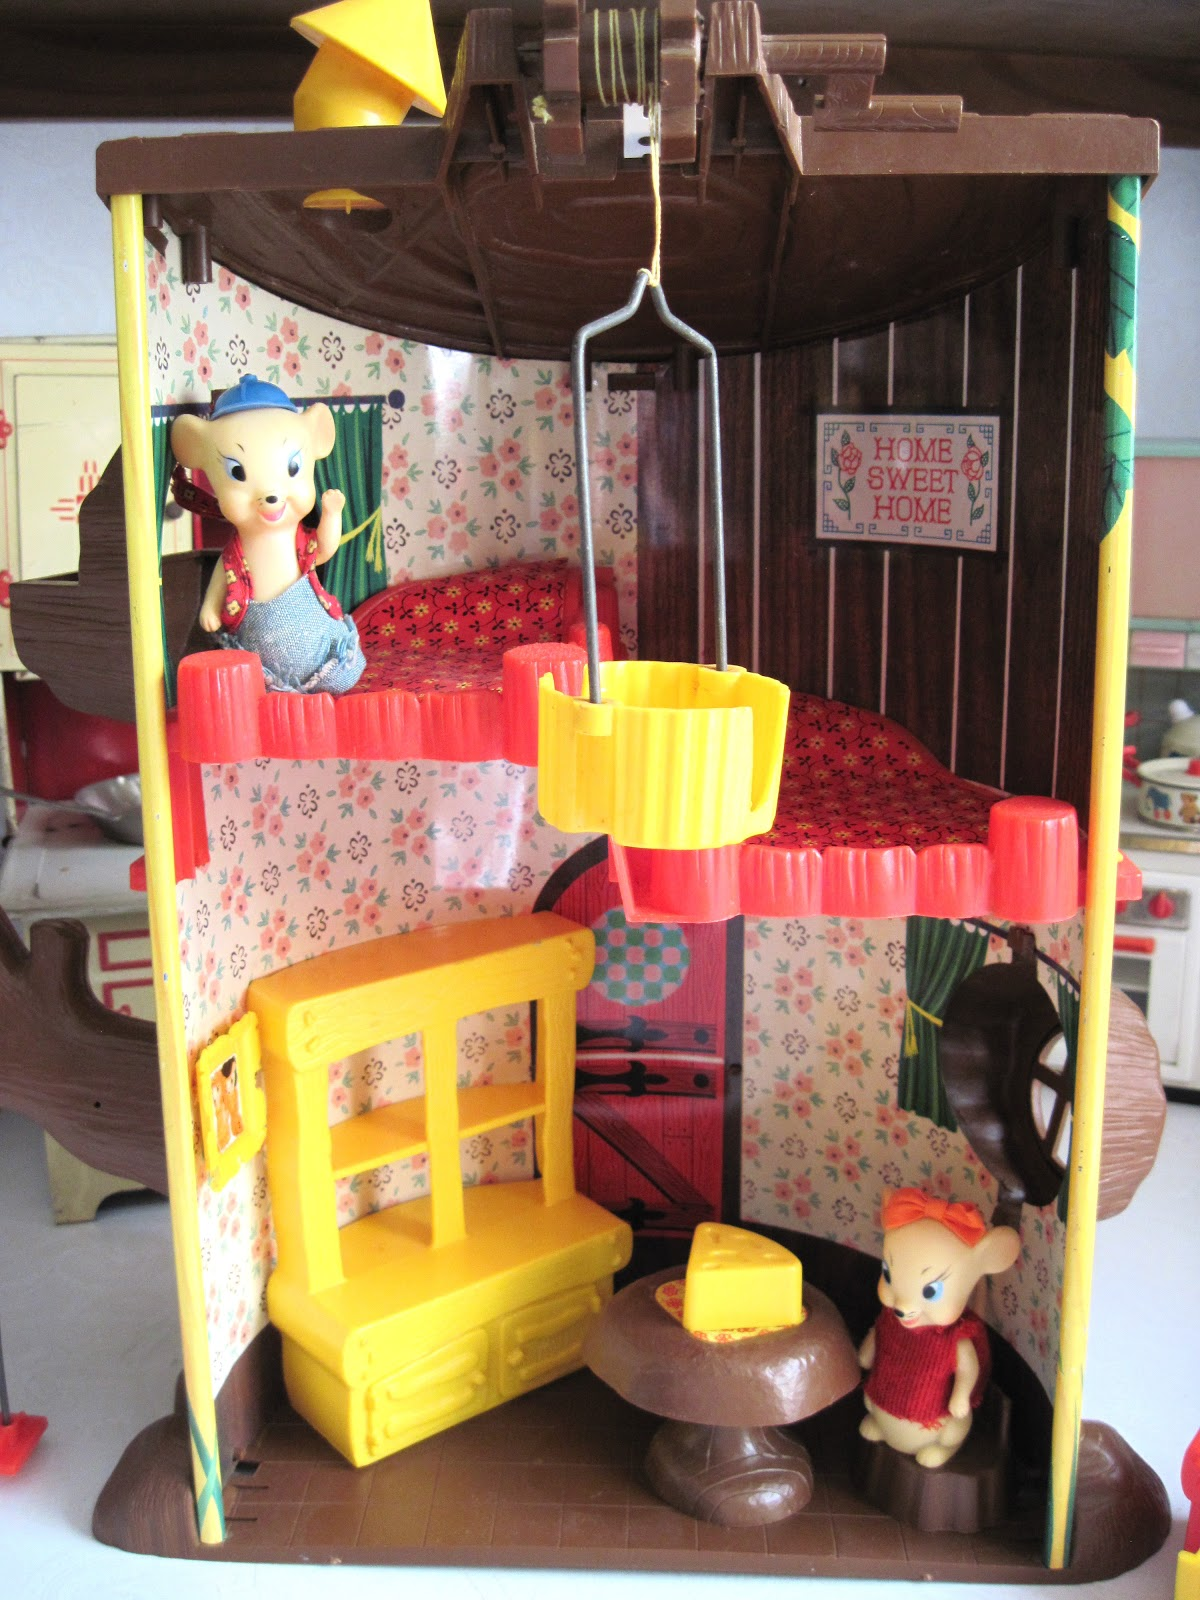 Remco S Elly And Andy Baby Mouse Tree House By Tracy